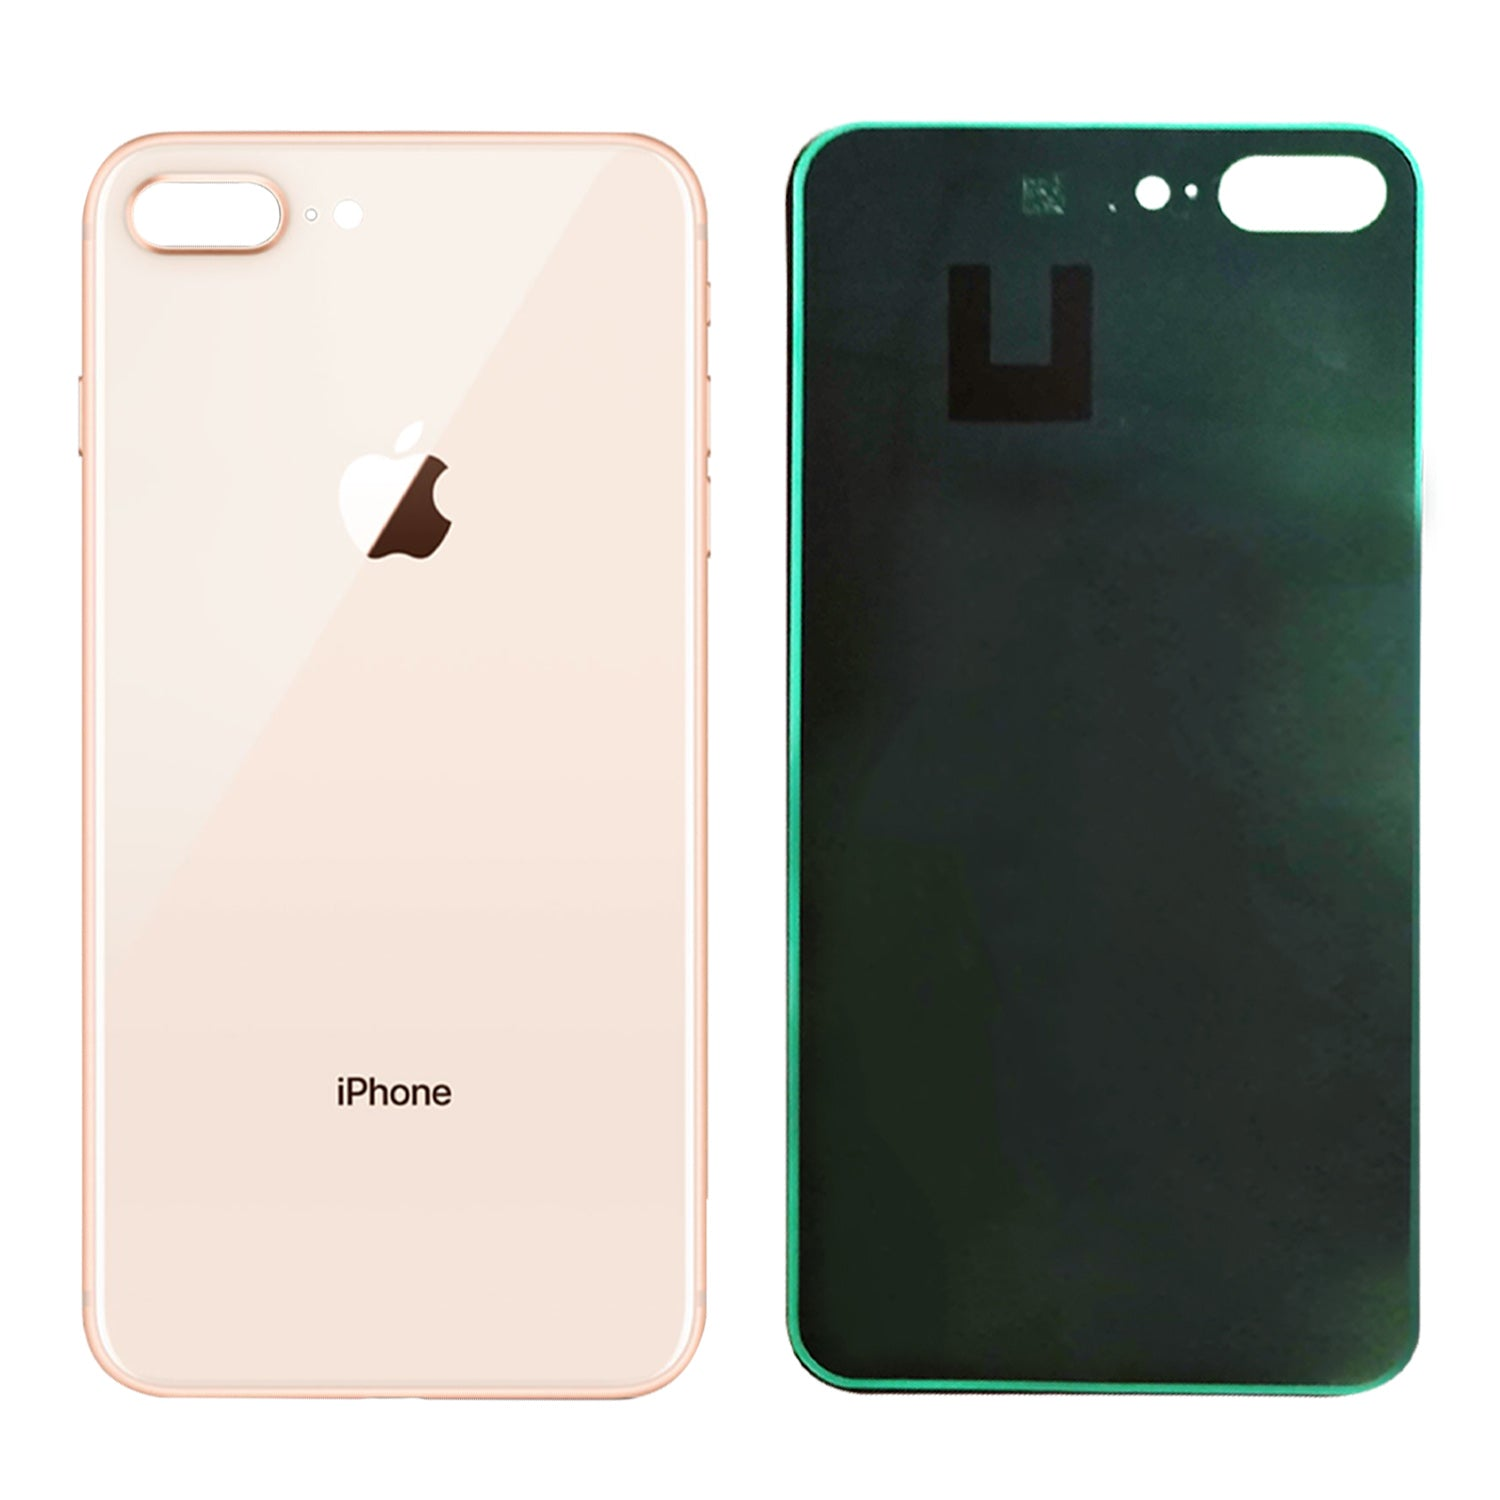 online retailer 289a7 1404d Apple iPhone 8 Plus Back Glass GOLD OEM Replacement Battery Door Cover w/  Adhesi